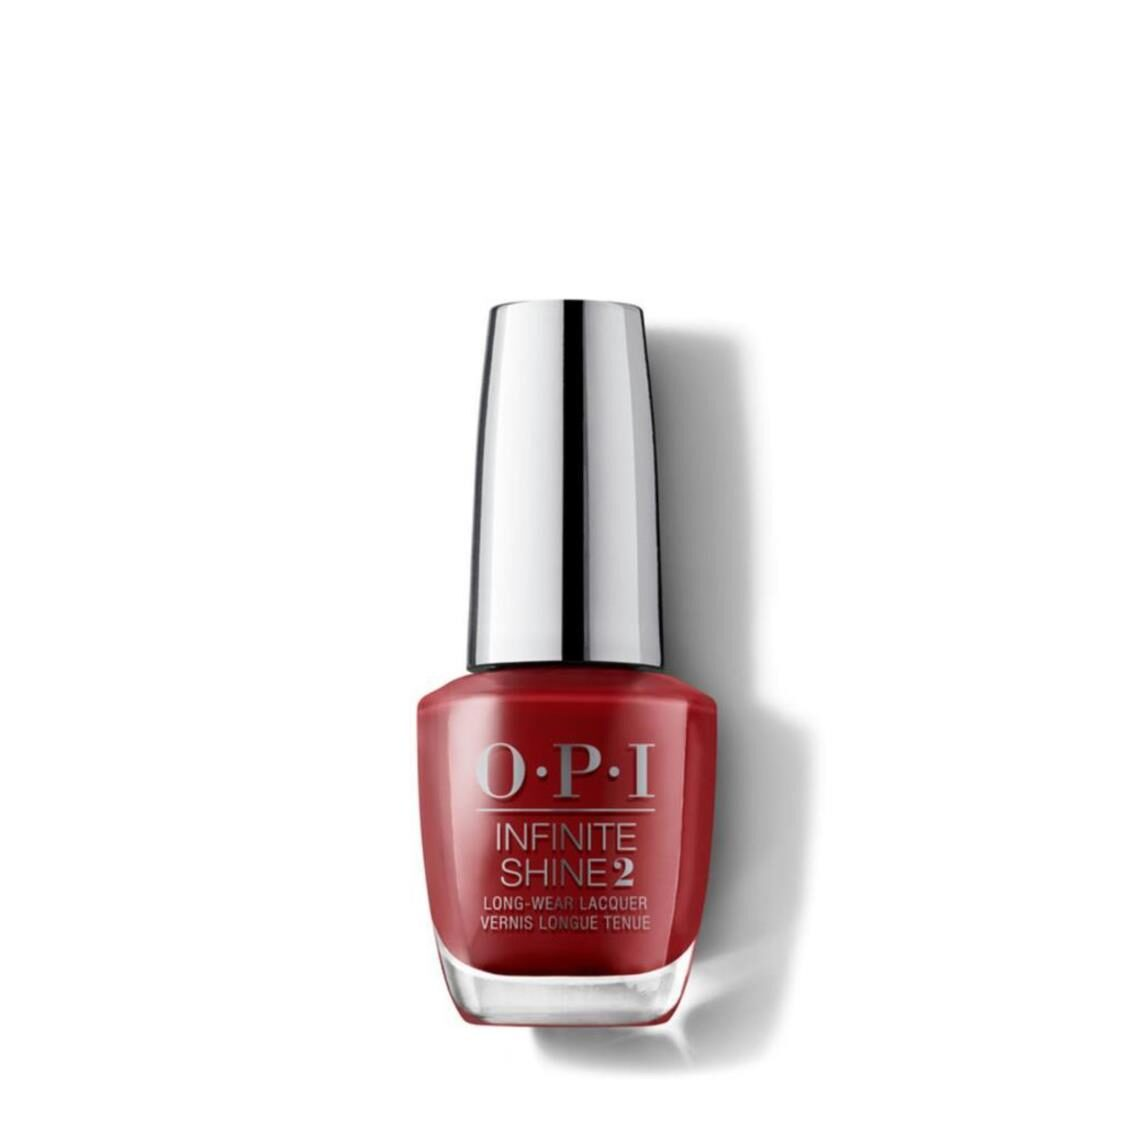 Opi Fall Collection 2018 Is I Love You Just Be-Cusco 15ml